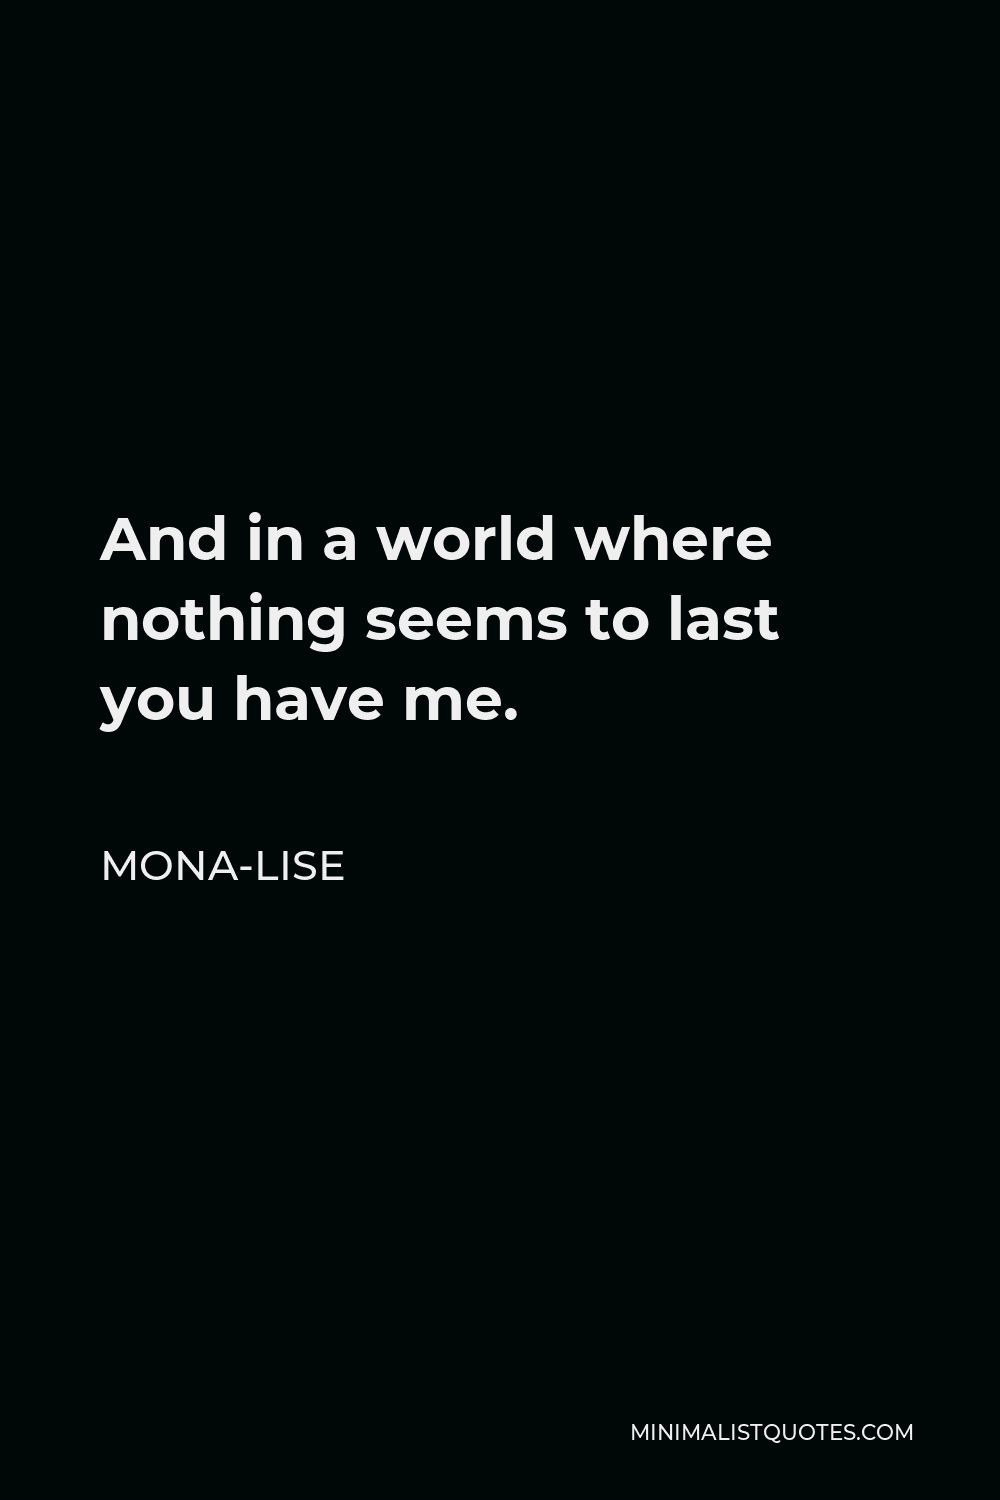 Mona-Lise Quote - And in a world where nothing seems to last you have me.